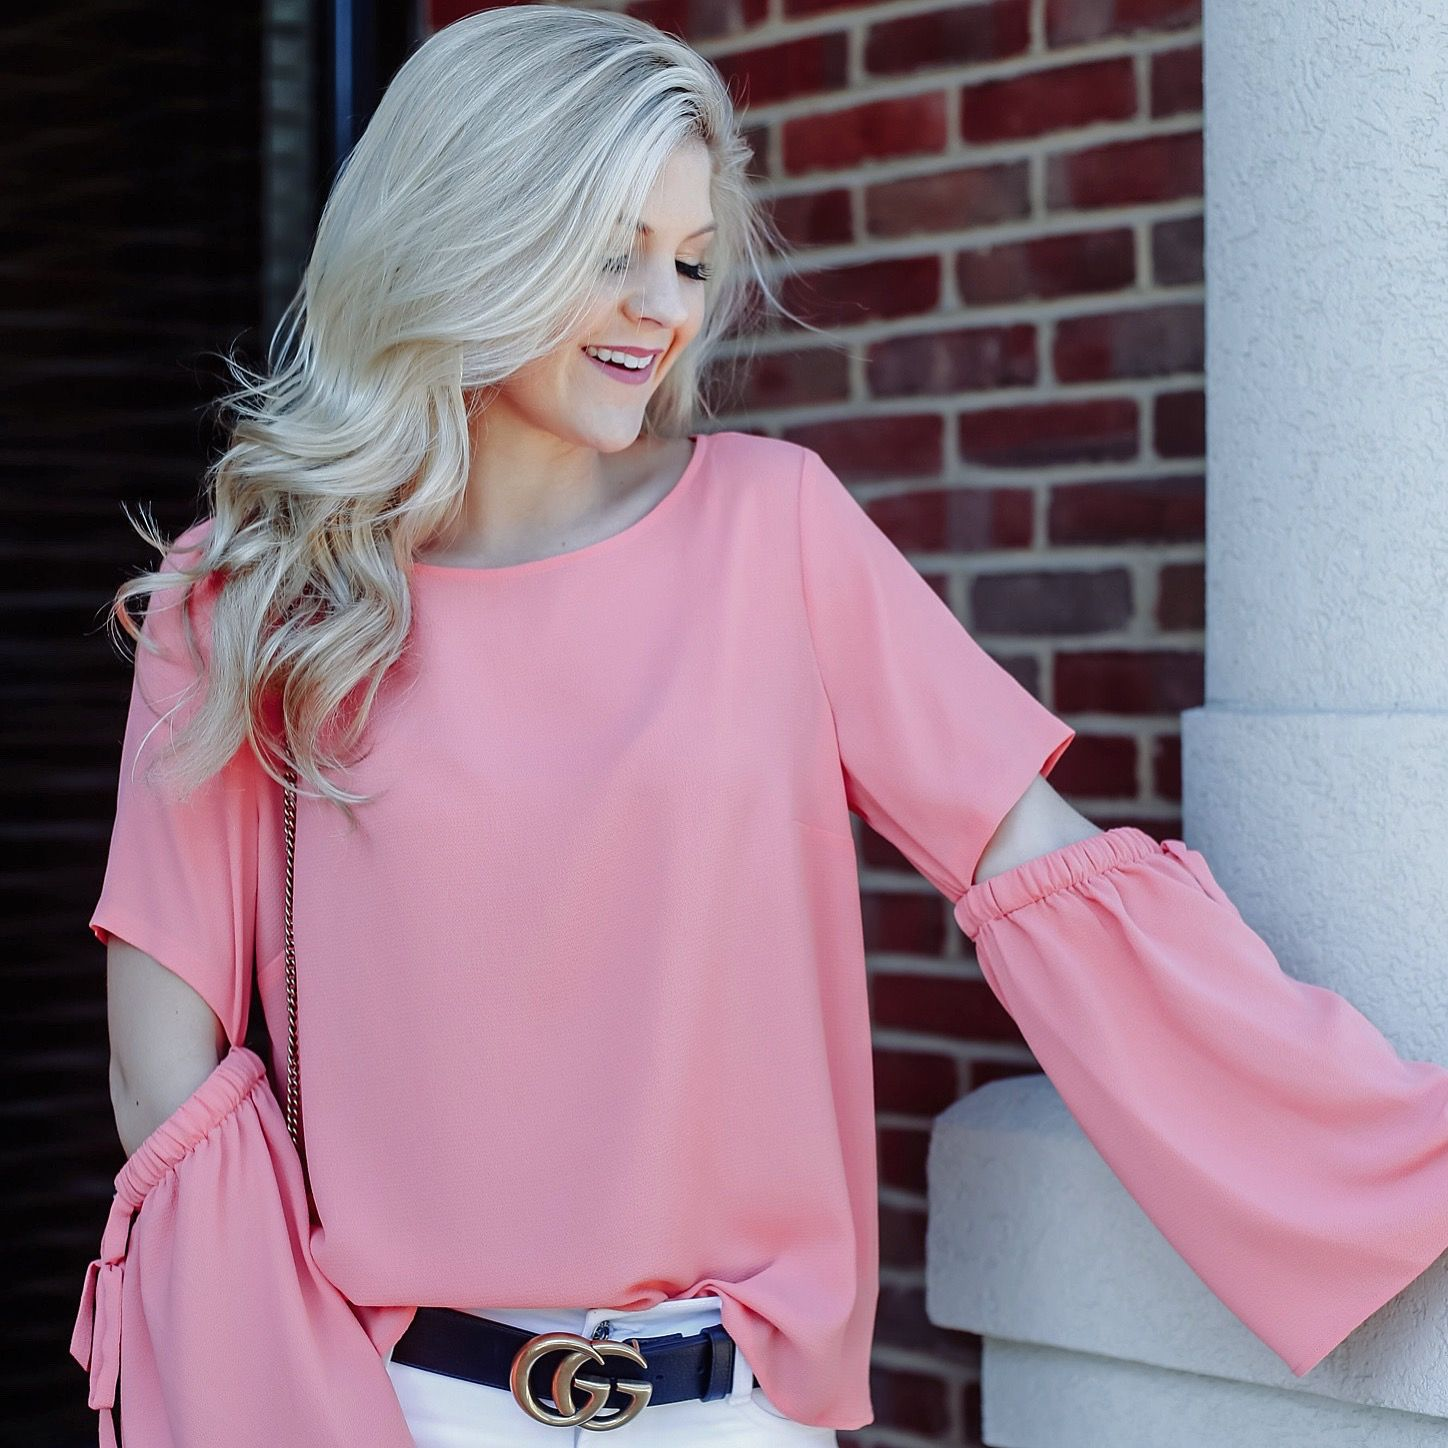 one of my favorite tops of all time!!  those sleeve details are perfect!! #springstyle #ootd #wiw #bloggerstyle #gucci